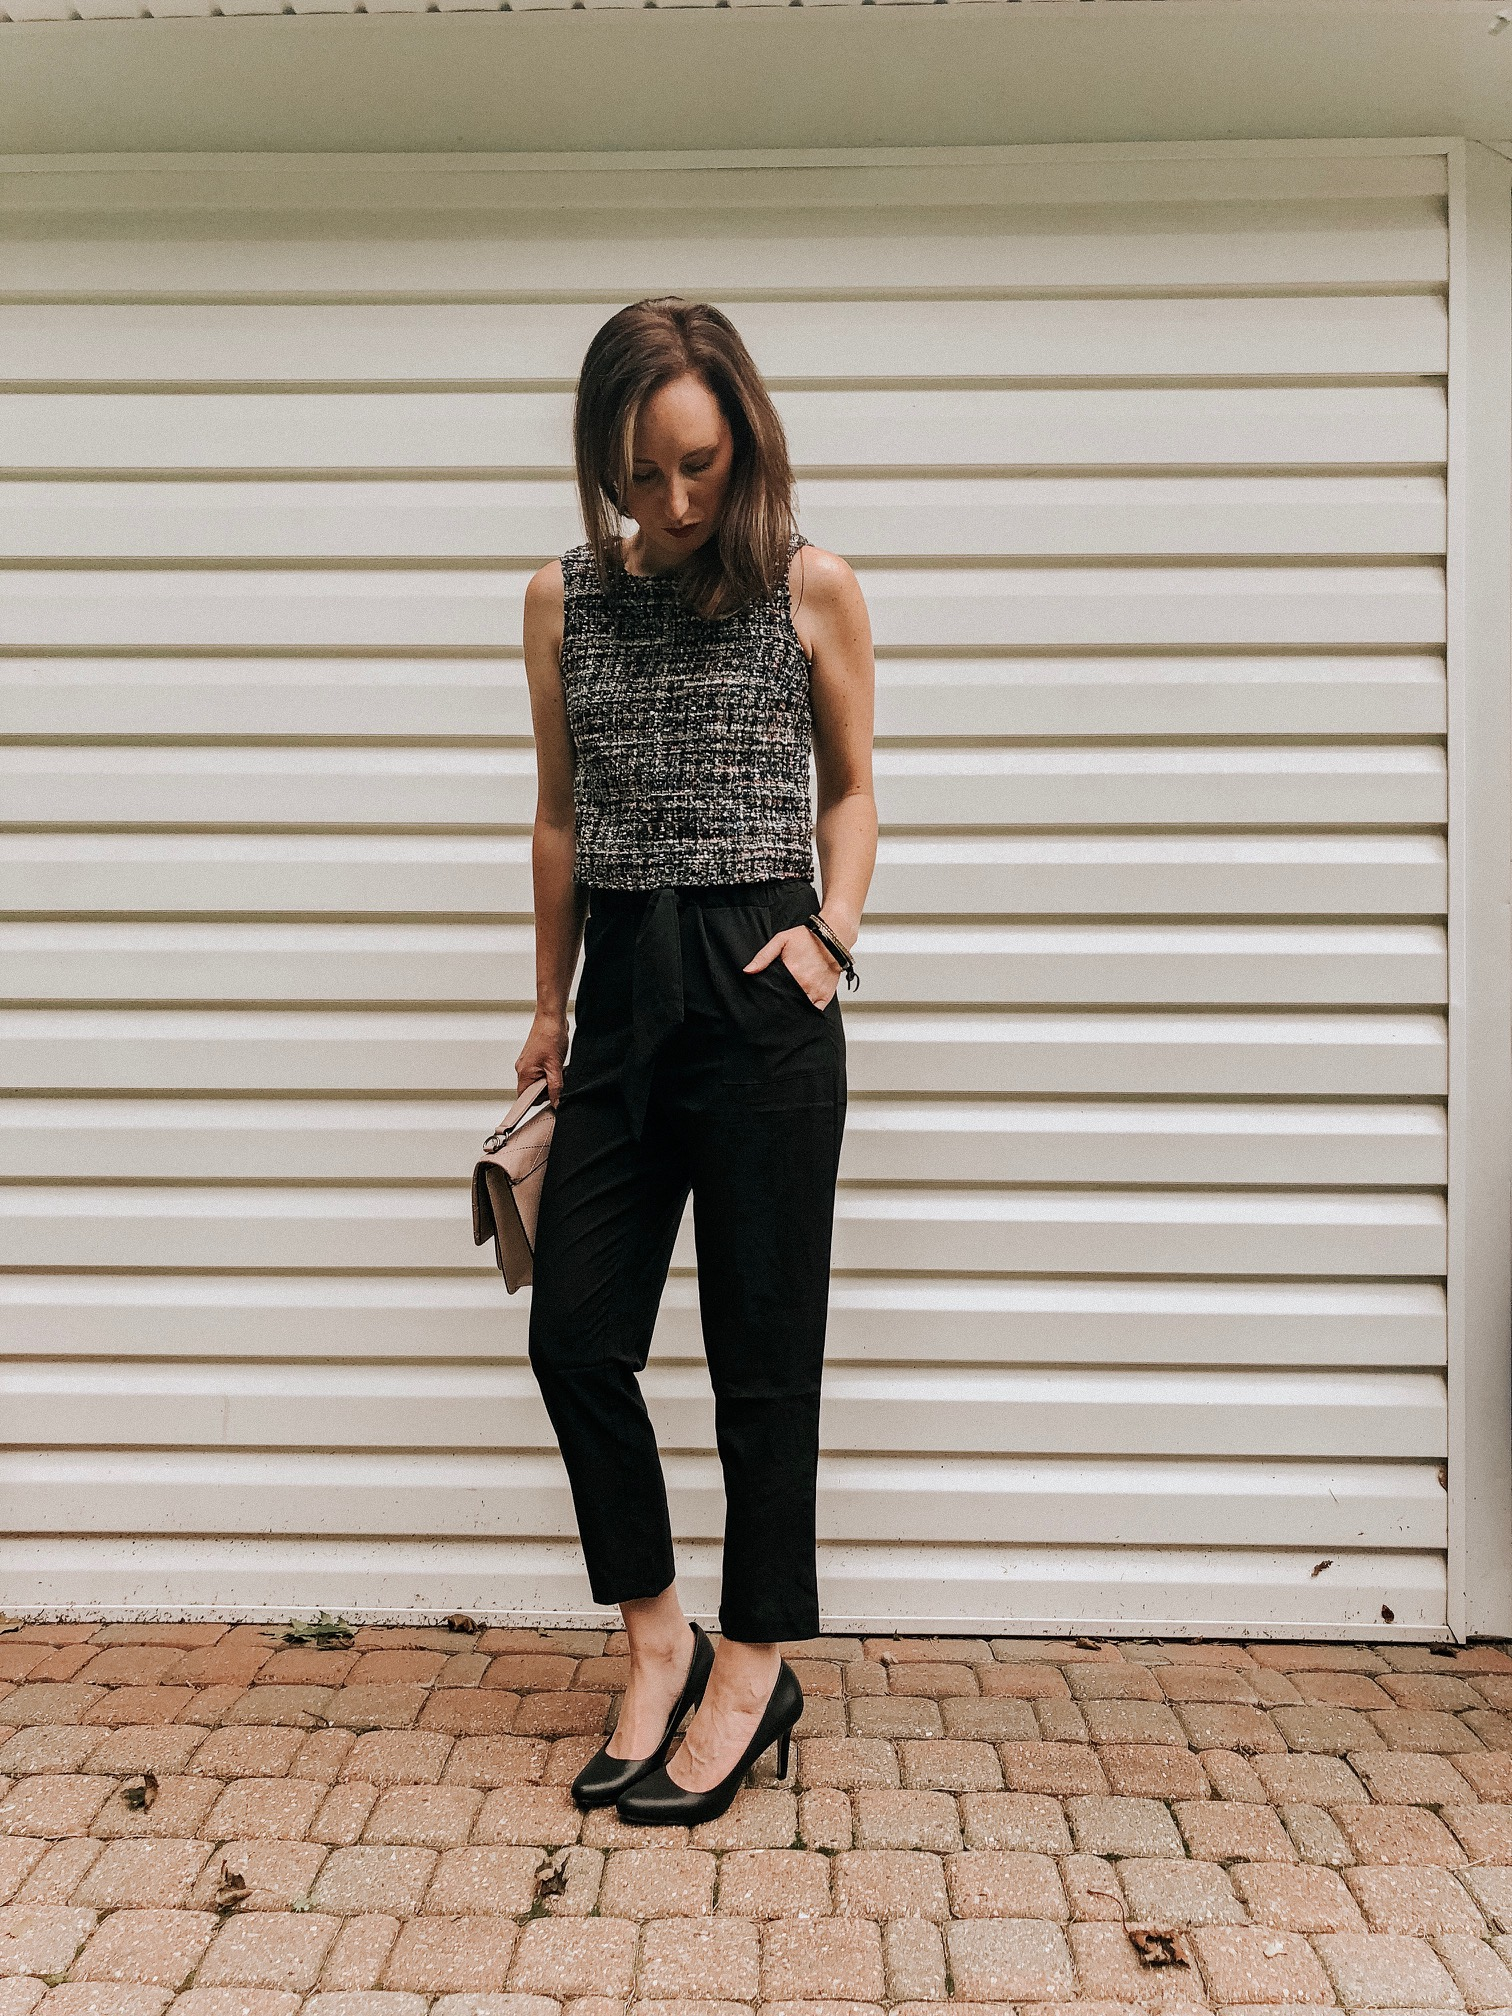 Fall Instagram Favorites | Daily Splendor Life and Style Blog | Black pants, tweed tank and pumps #momstyle #everydayfashion #fallstyle #workwear #officewear